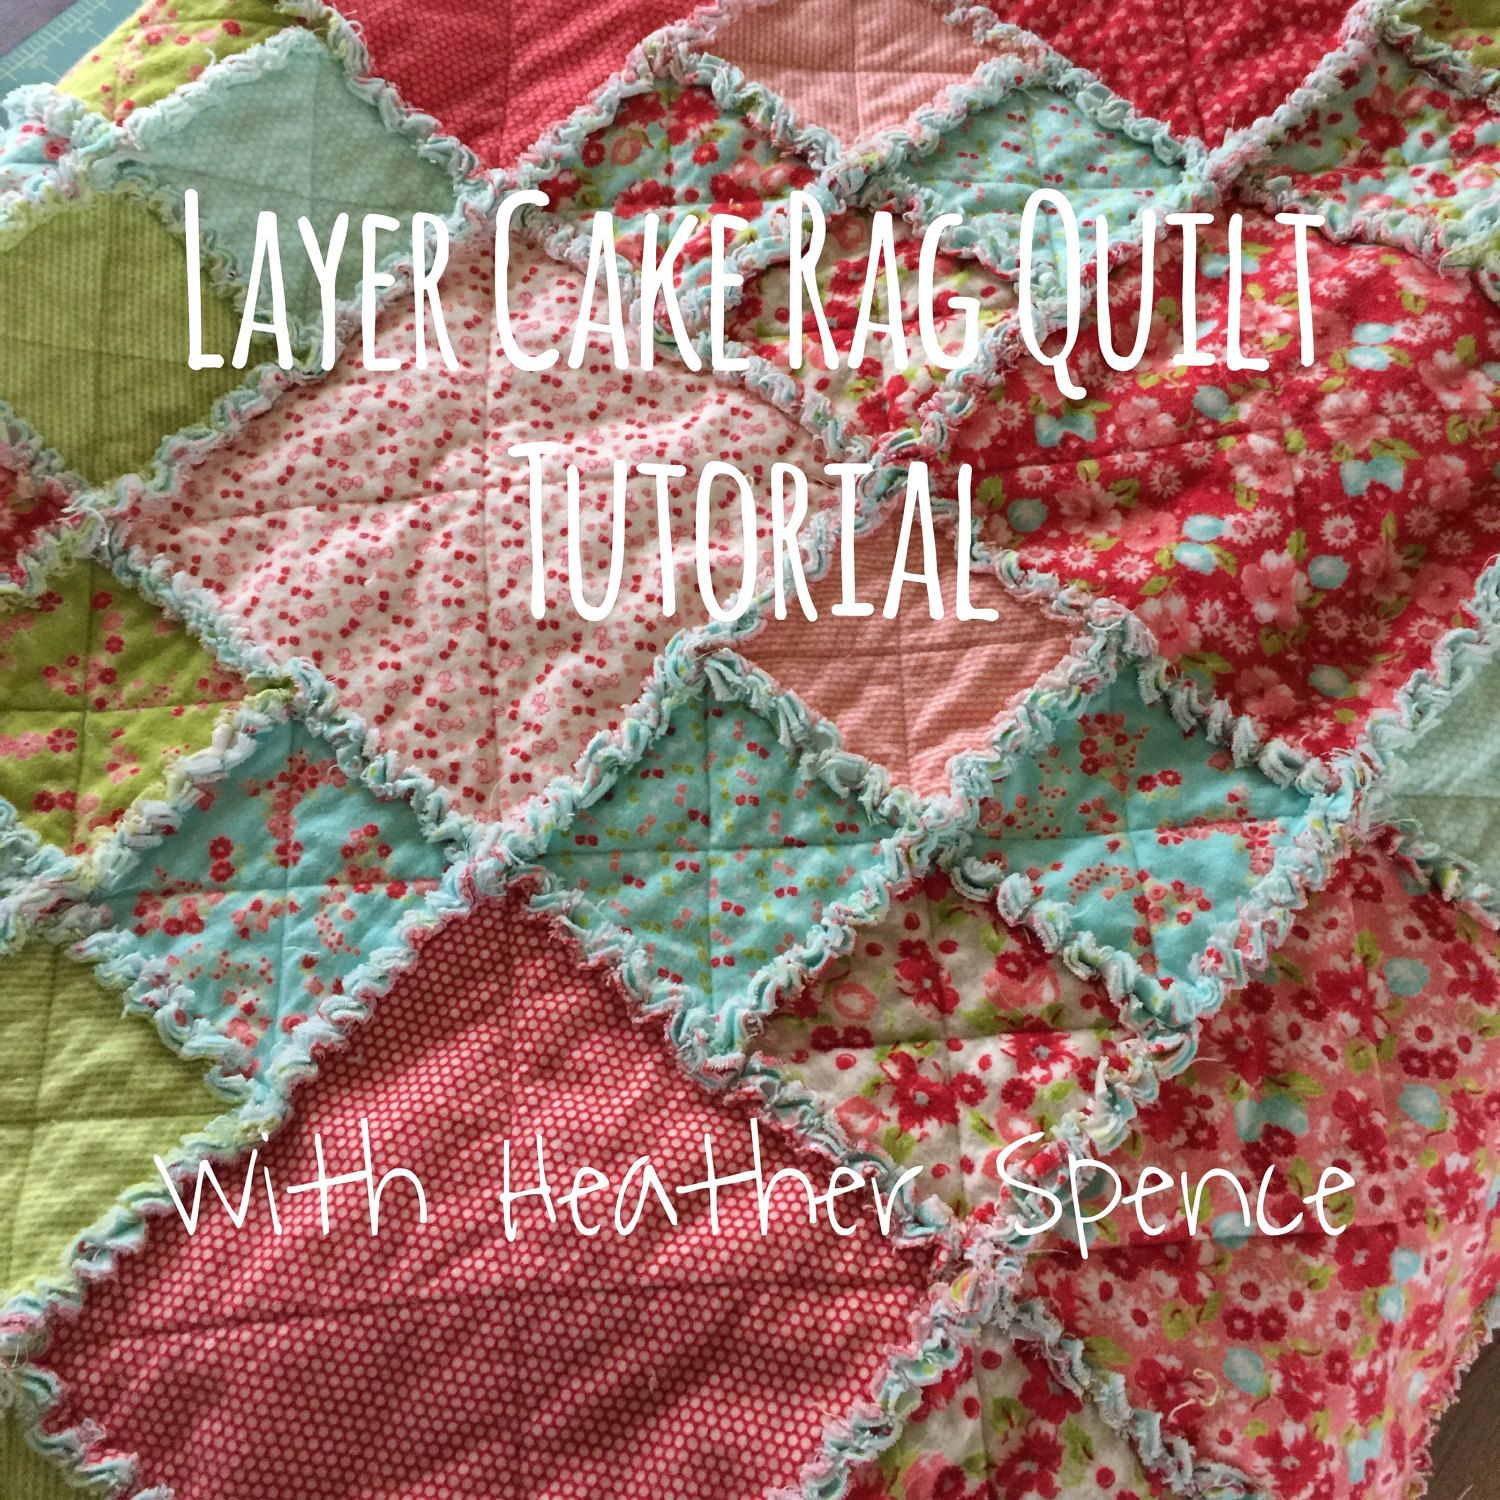 Layer Cake Rag Quilt Tutorial with Heather Spence | Crochet blankets ...